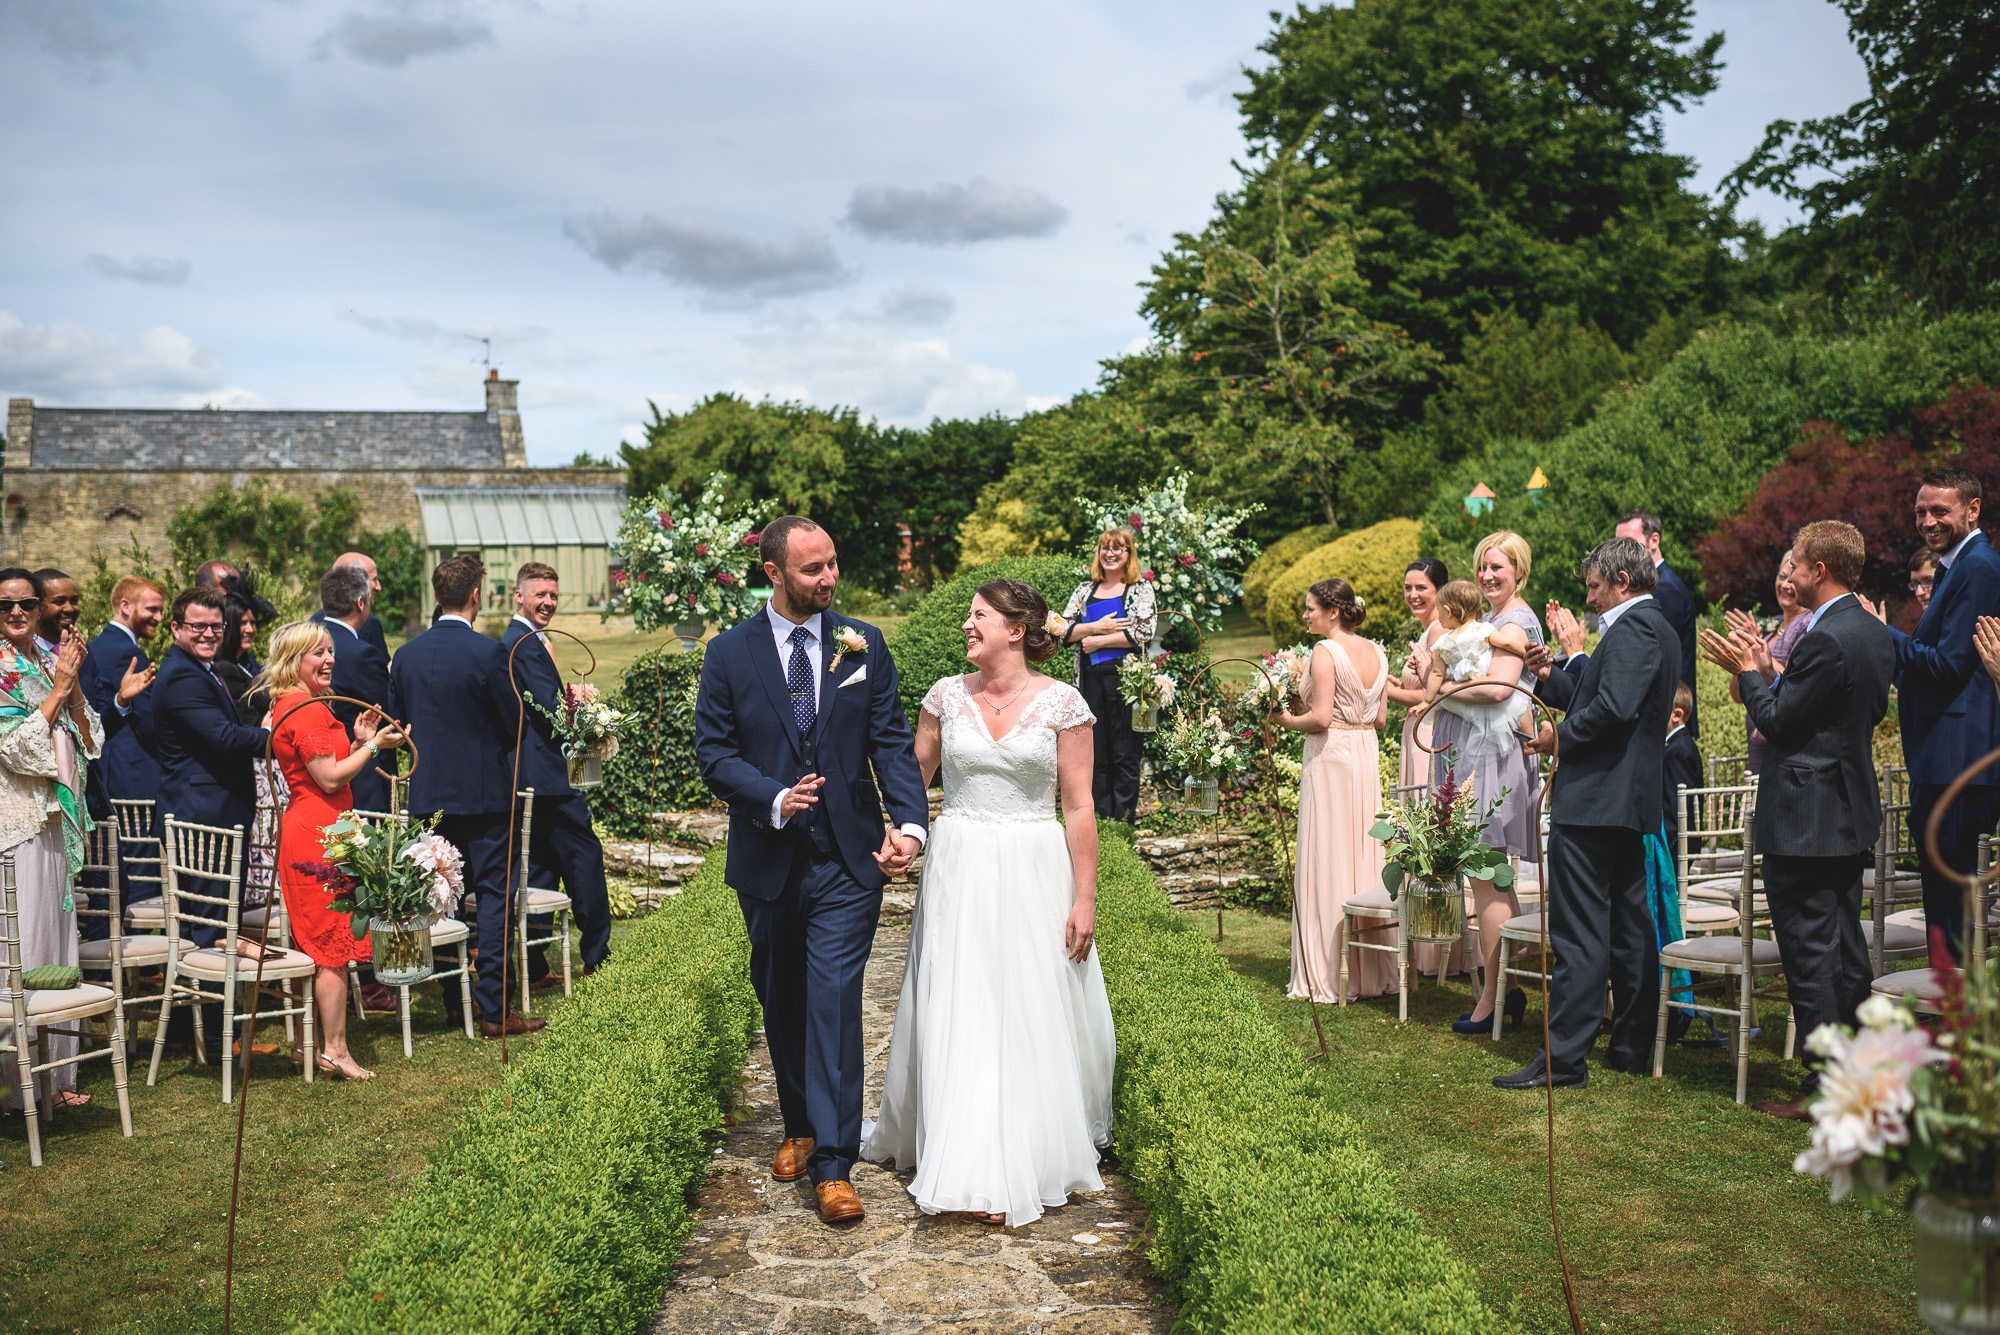 Jem and Andy - The Rectory at Crudwell wedding photography by Guy Collier Photography